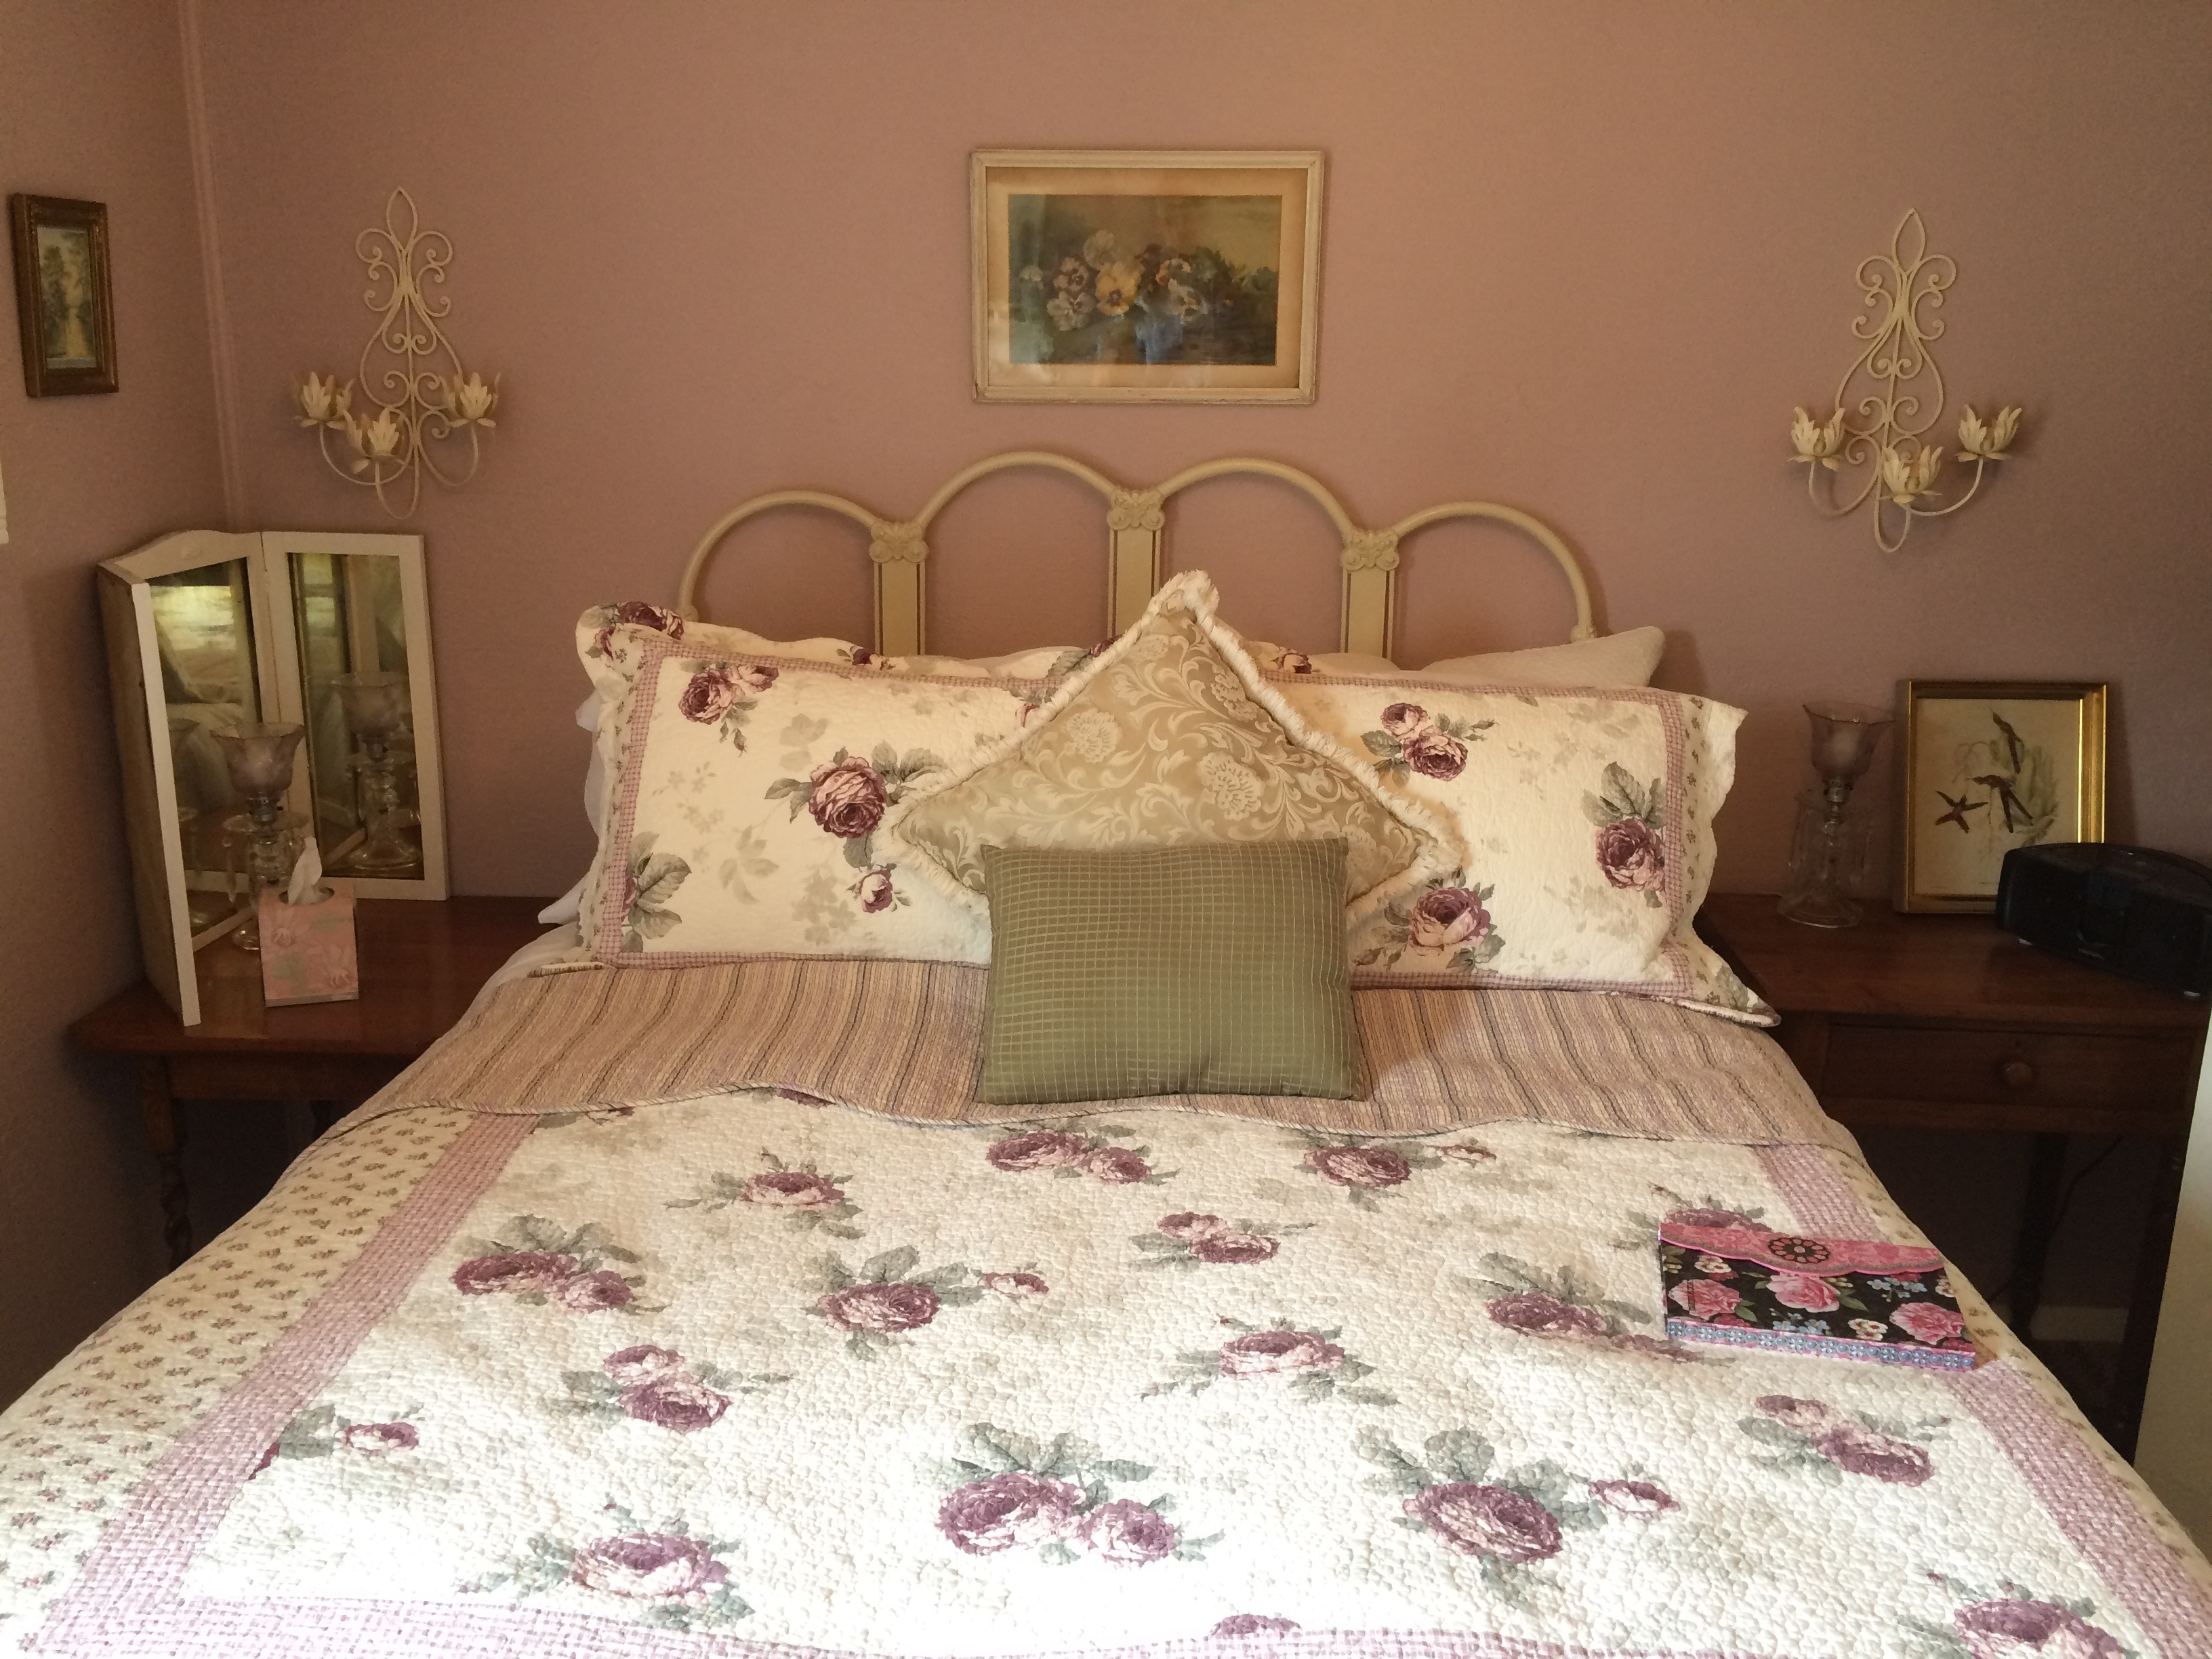 Our second room features an extremely comfortable bed, soothing colors and collectables.